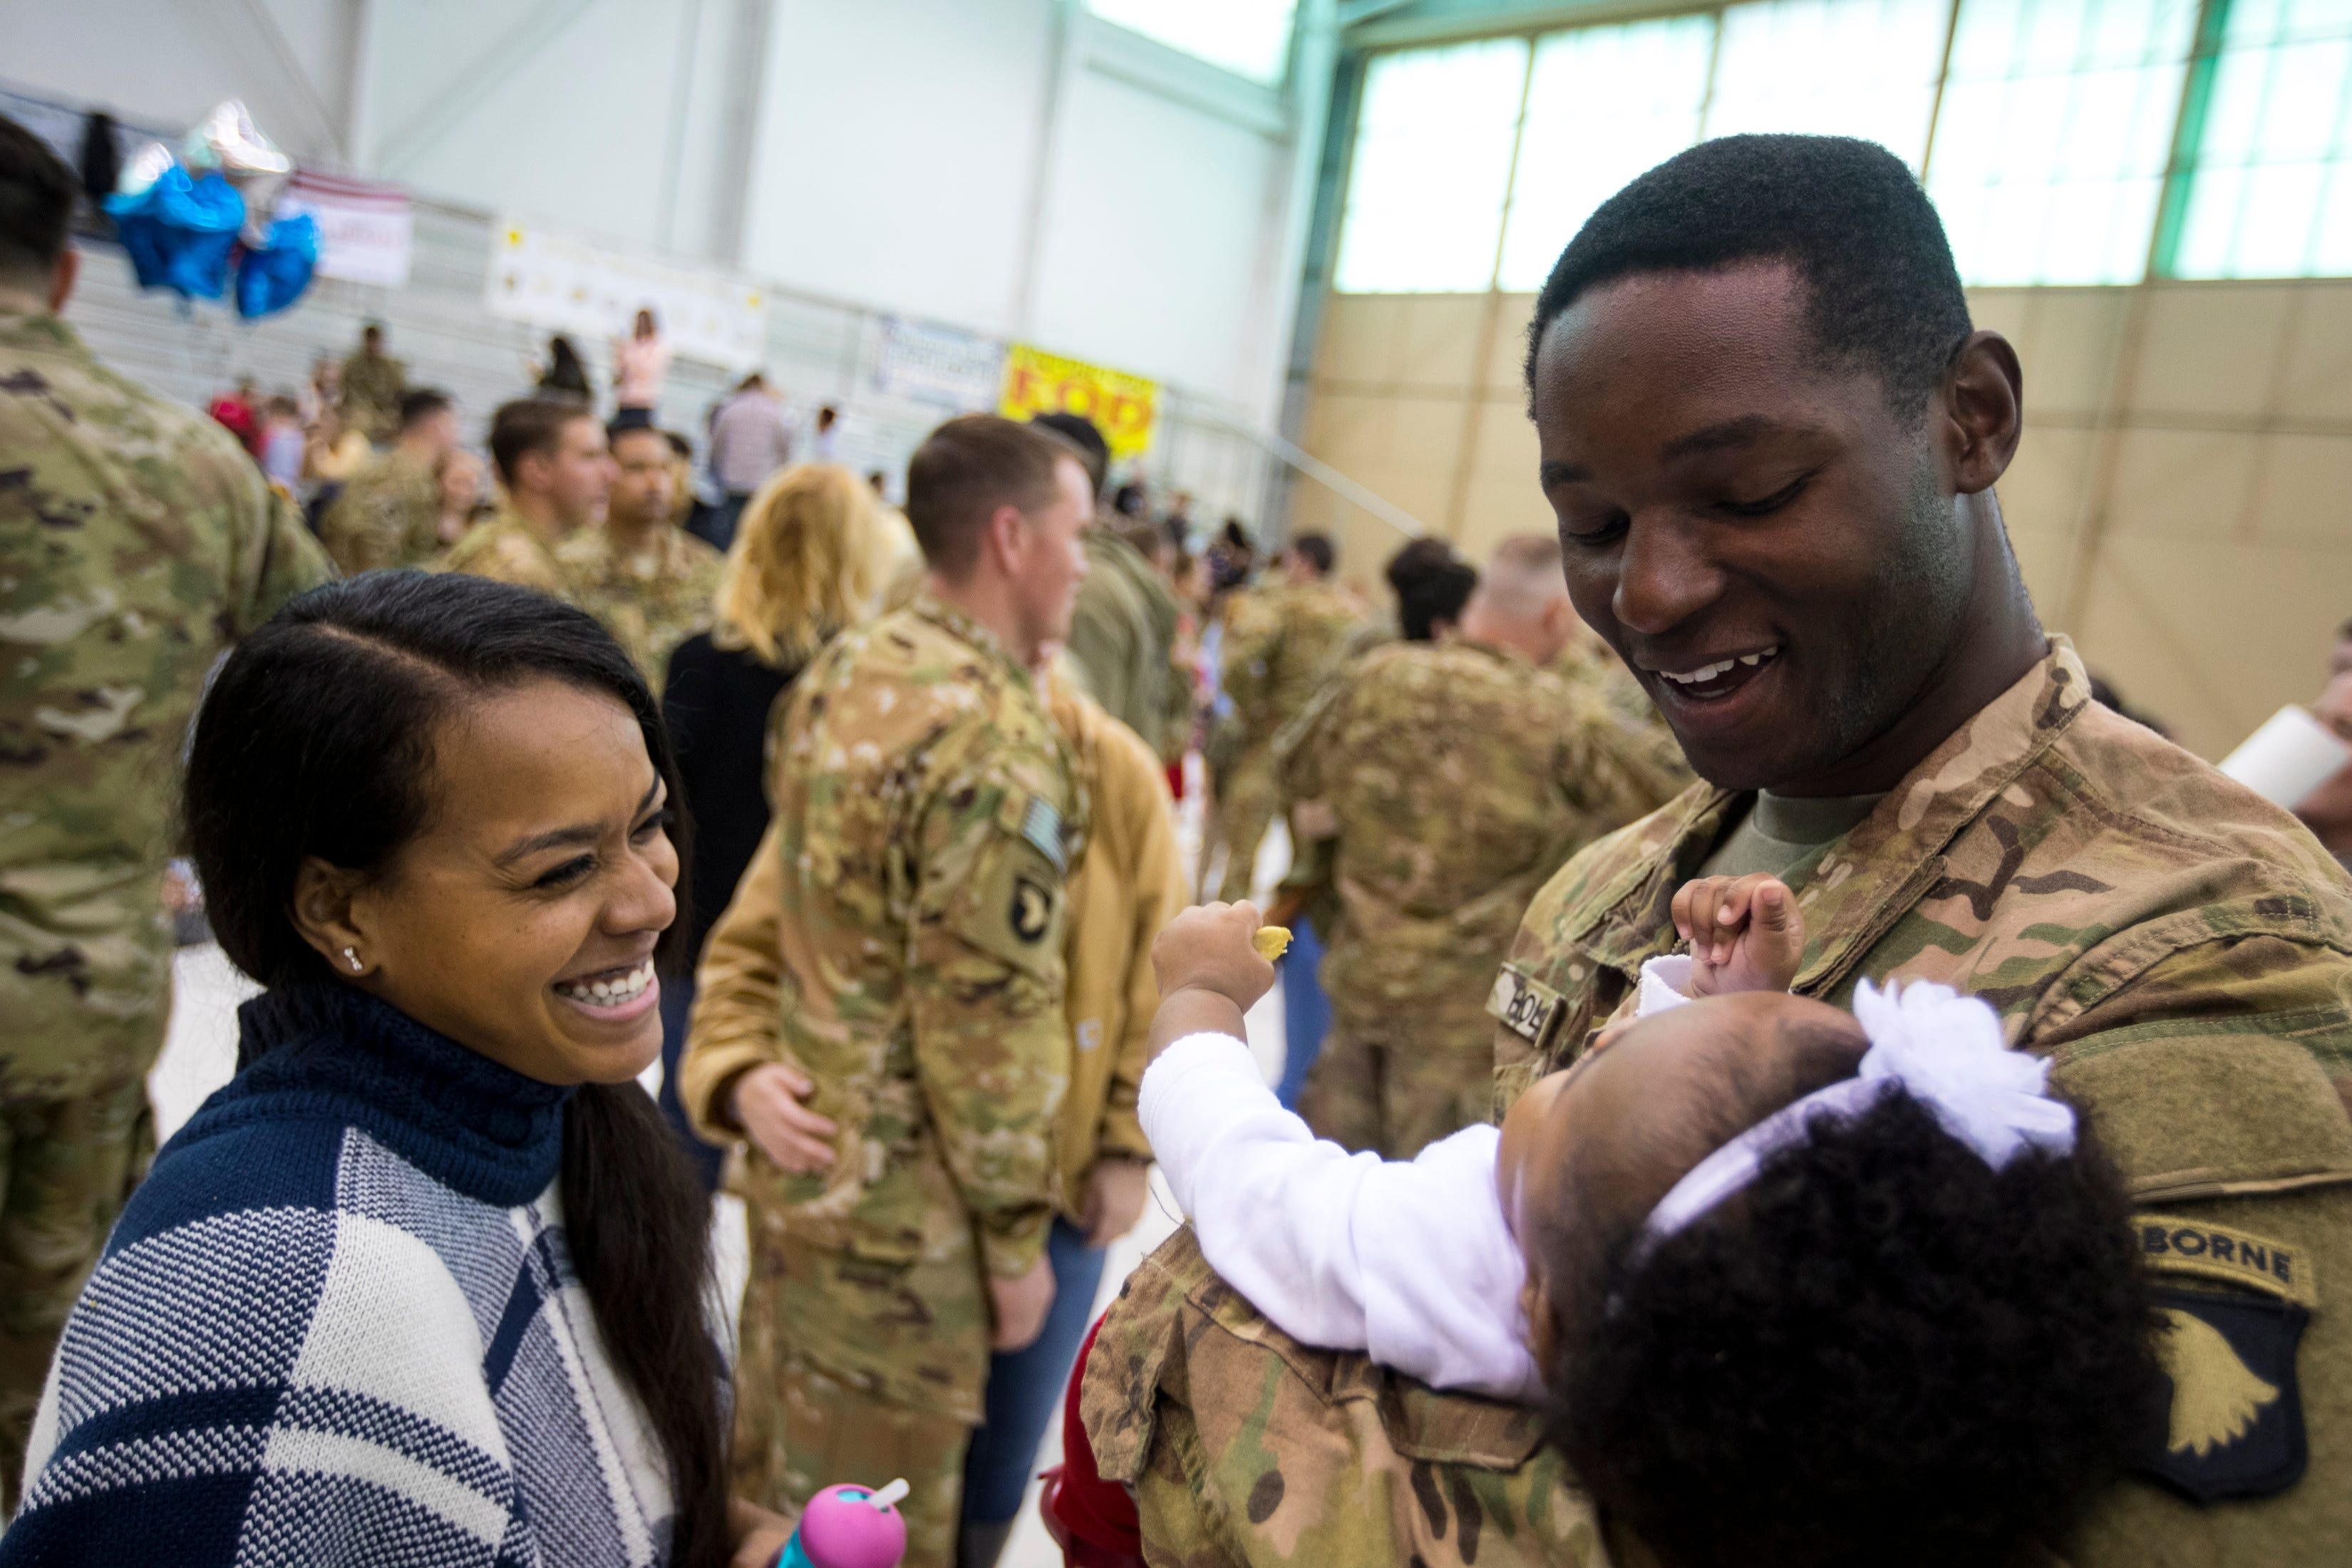 101st Airborne soldiers return home from Afghanistan